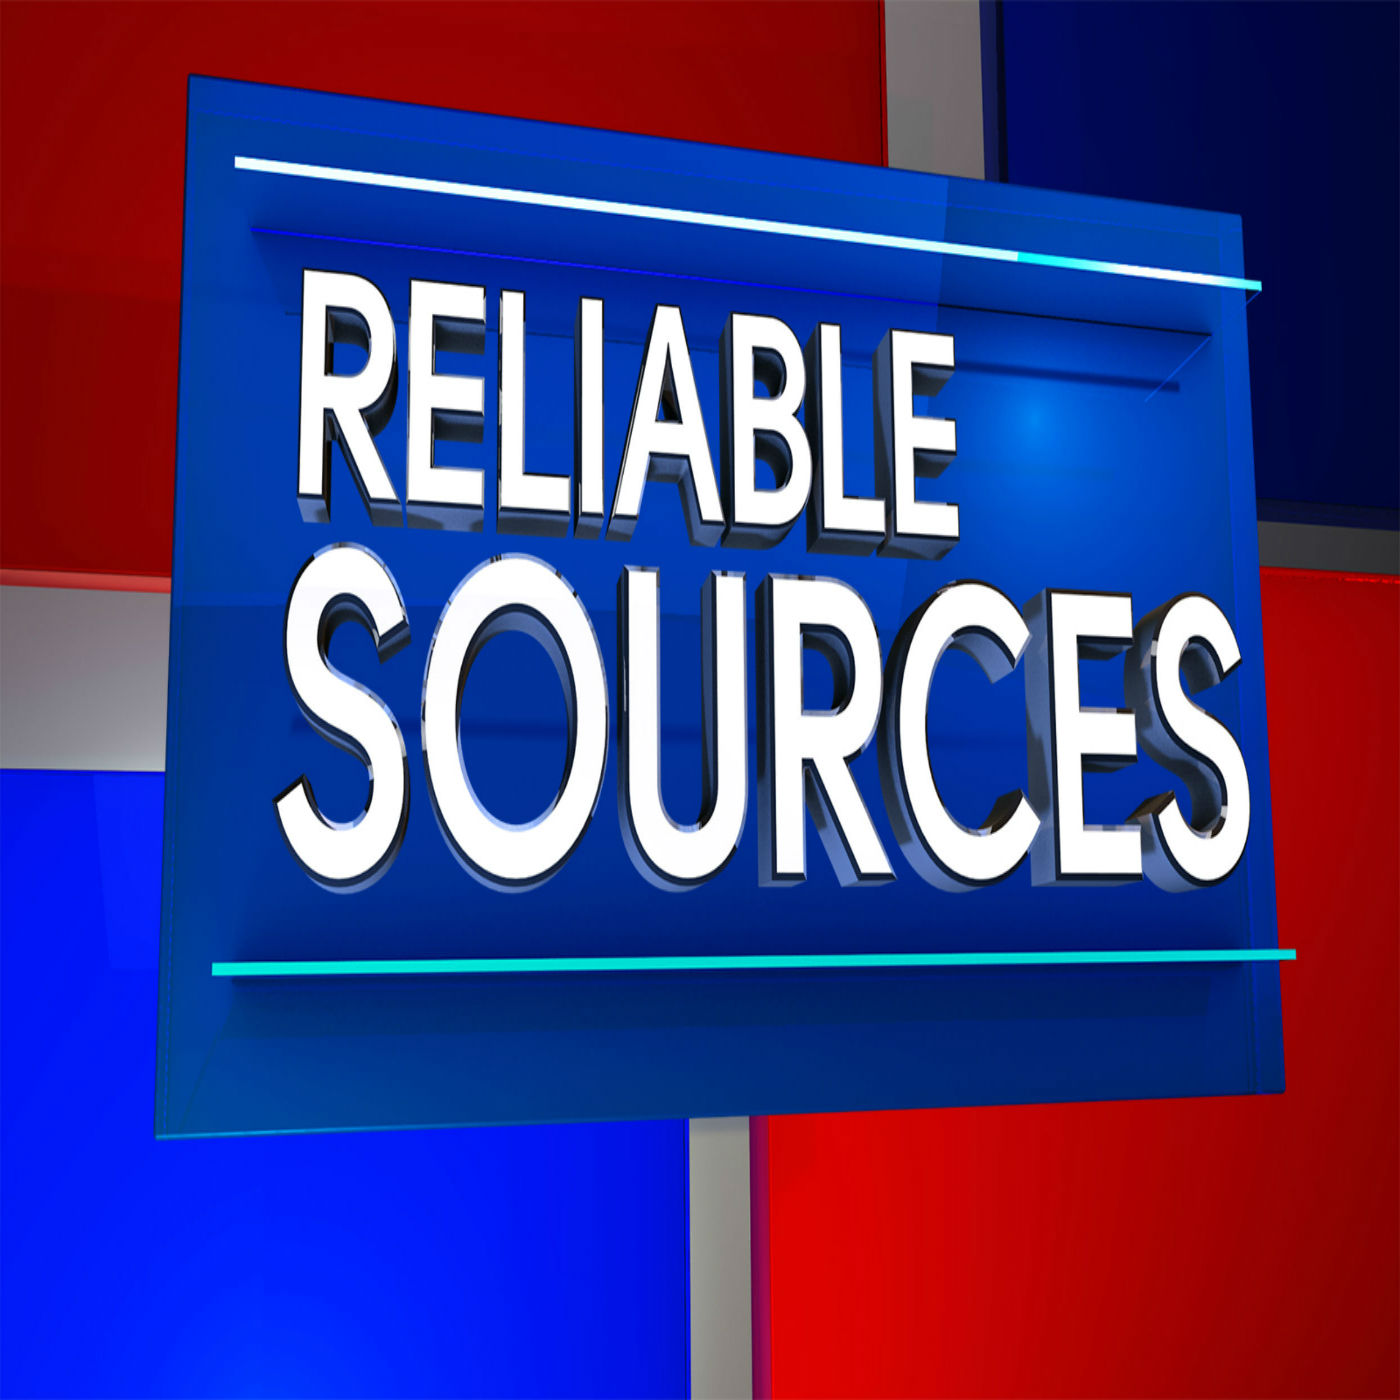 reliable sources The definition of a credible source can change depending on the discipline, but in general, for academic writing, a credible source is one that is unbiased and is backed up with evidence when writing a research paper, always use and cite credible sources use this checklist to determine if an article is credible or not.